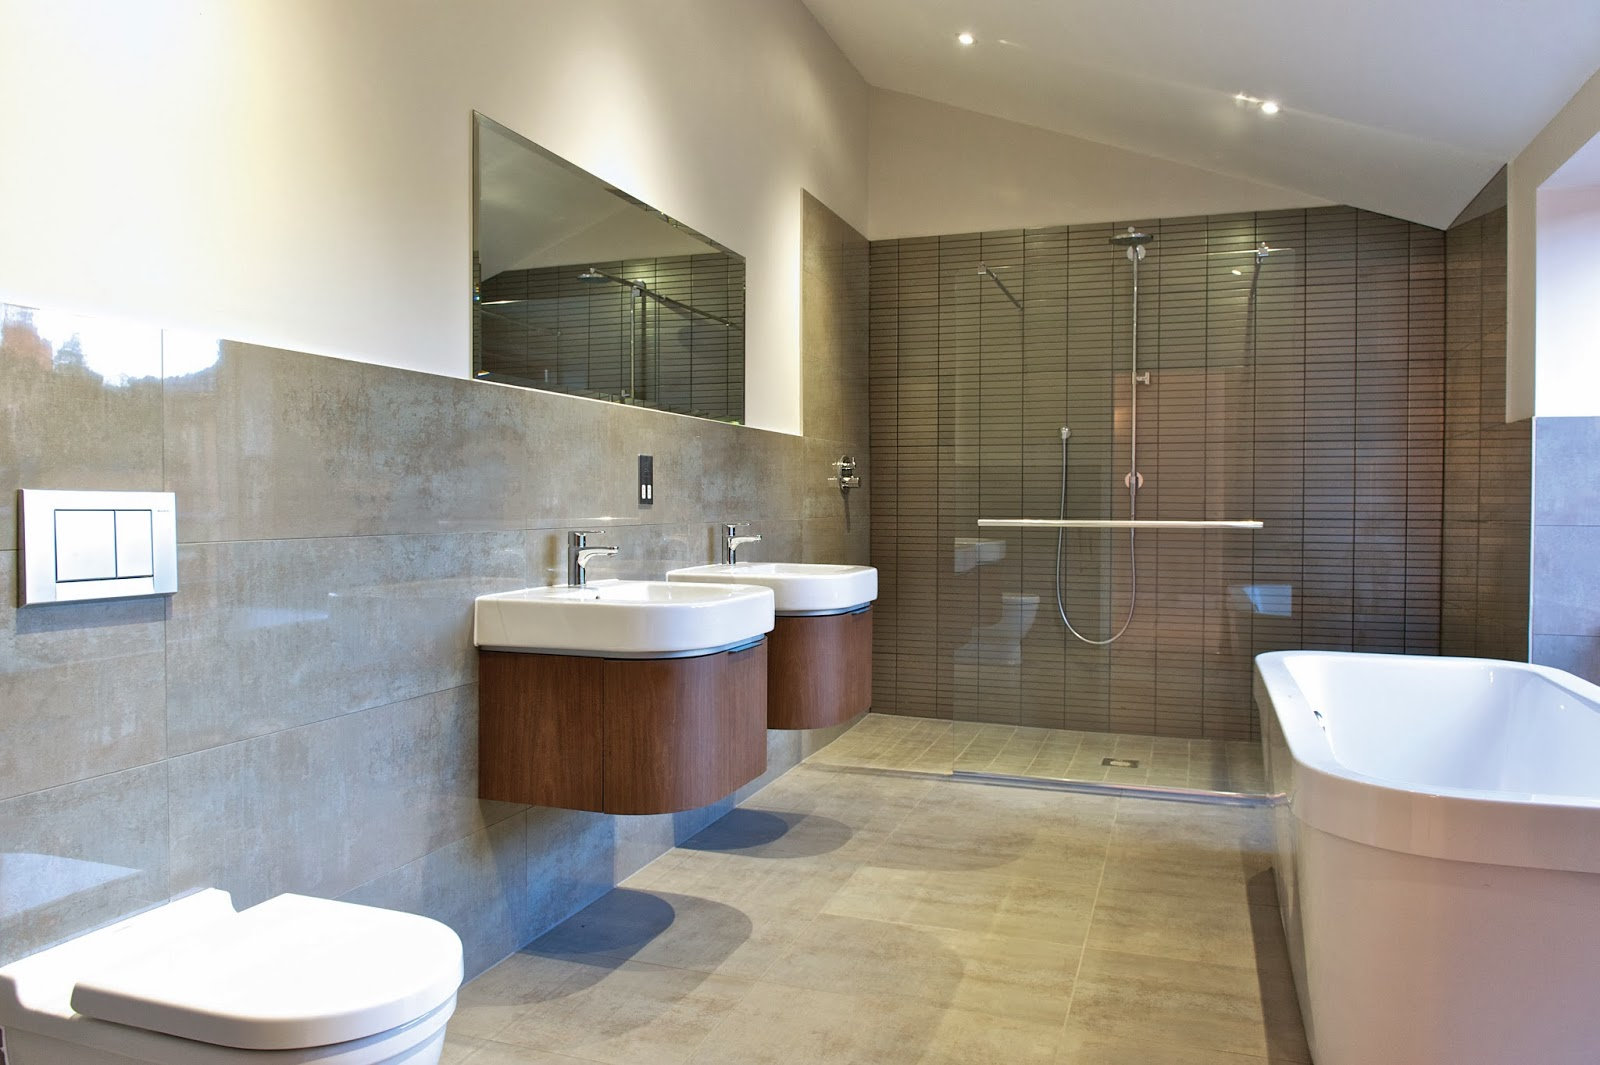 spa luxury at home | the designer knowledge